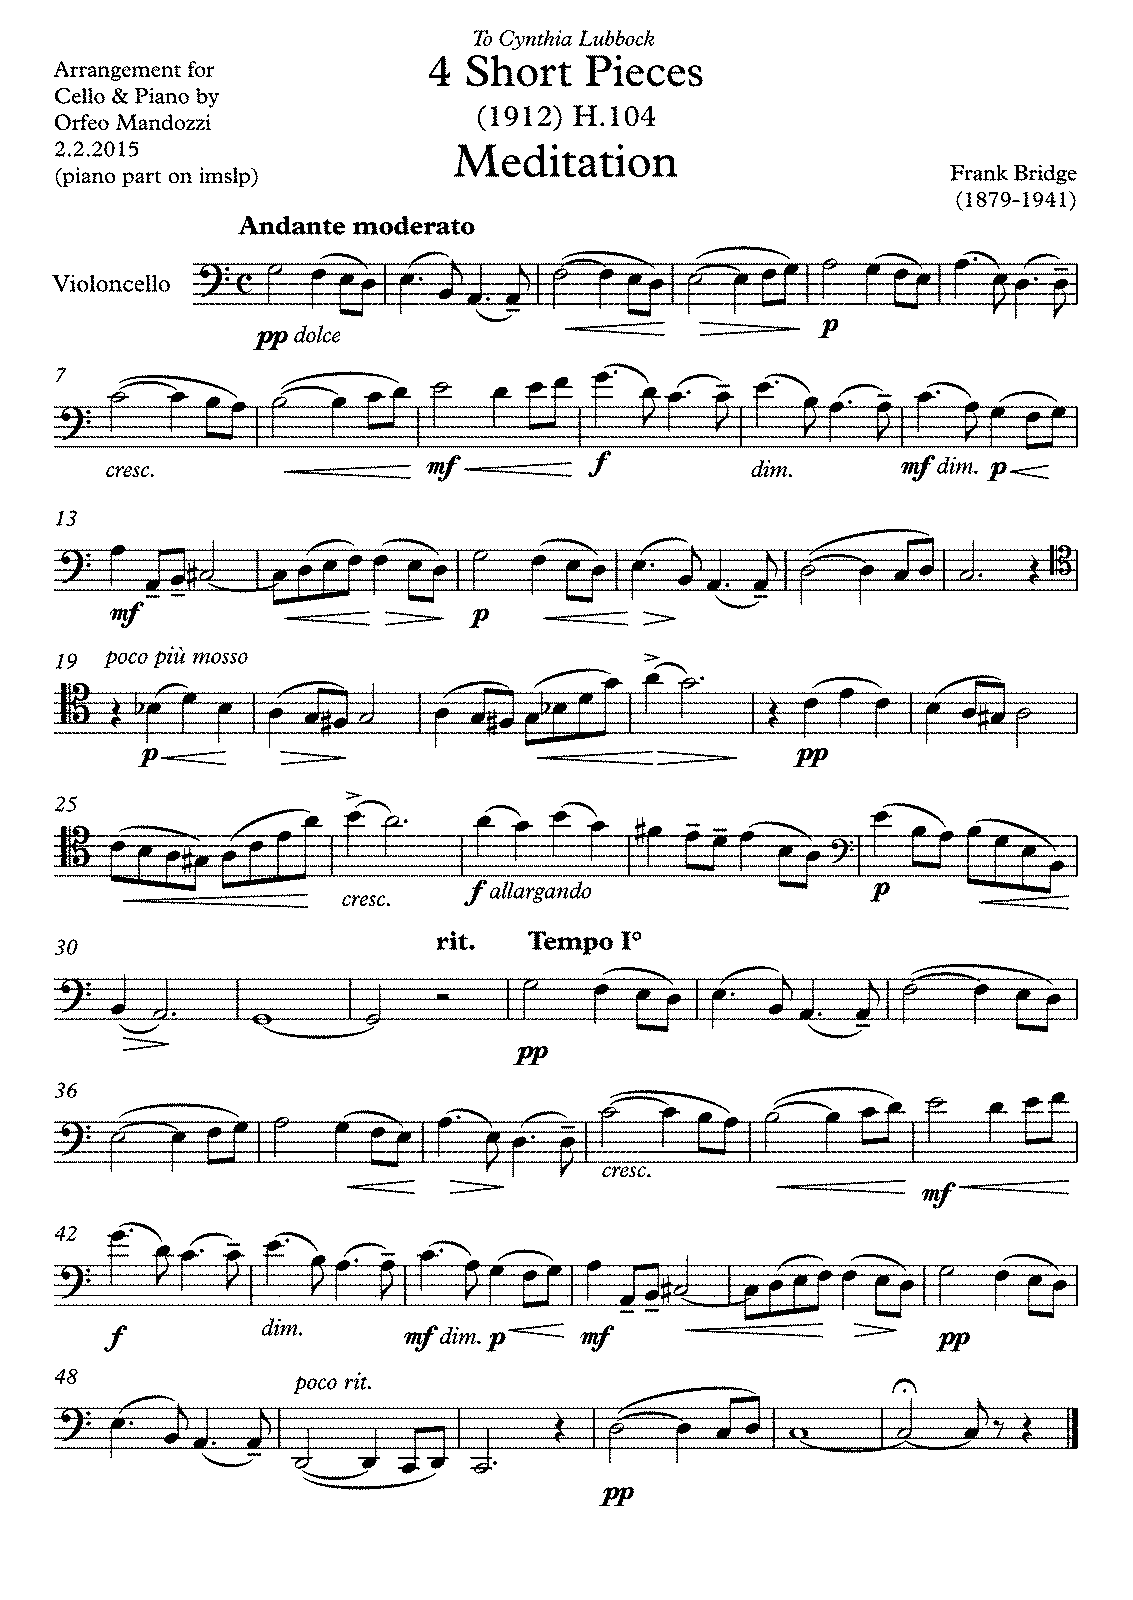 PMLP70802-Bridge Mandozzi 4 Pieces cello - Partitur.pdf